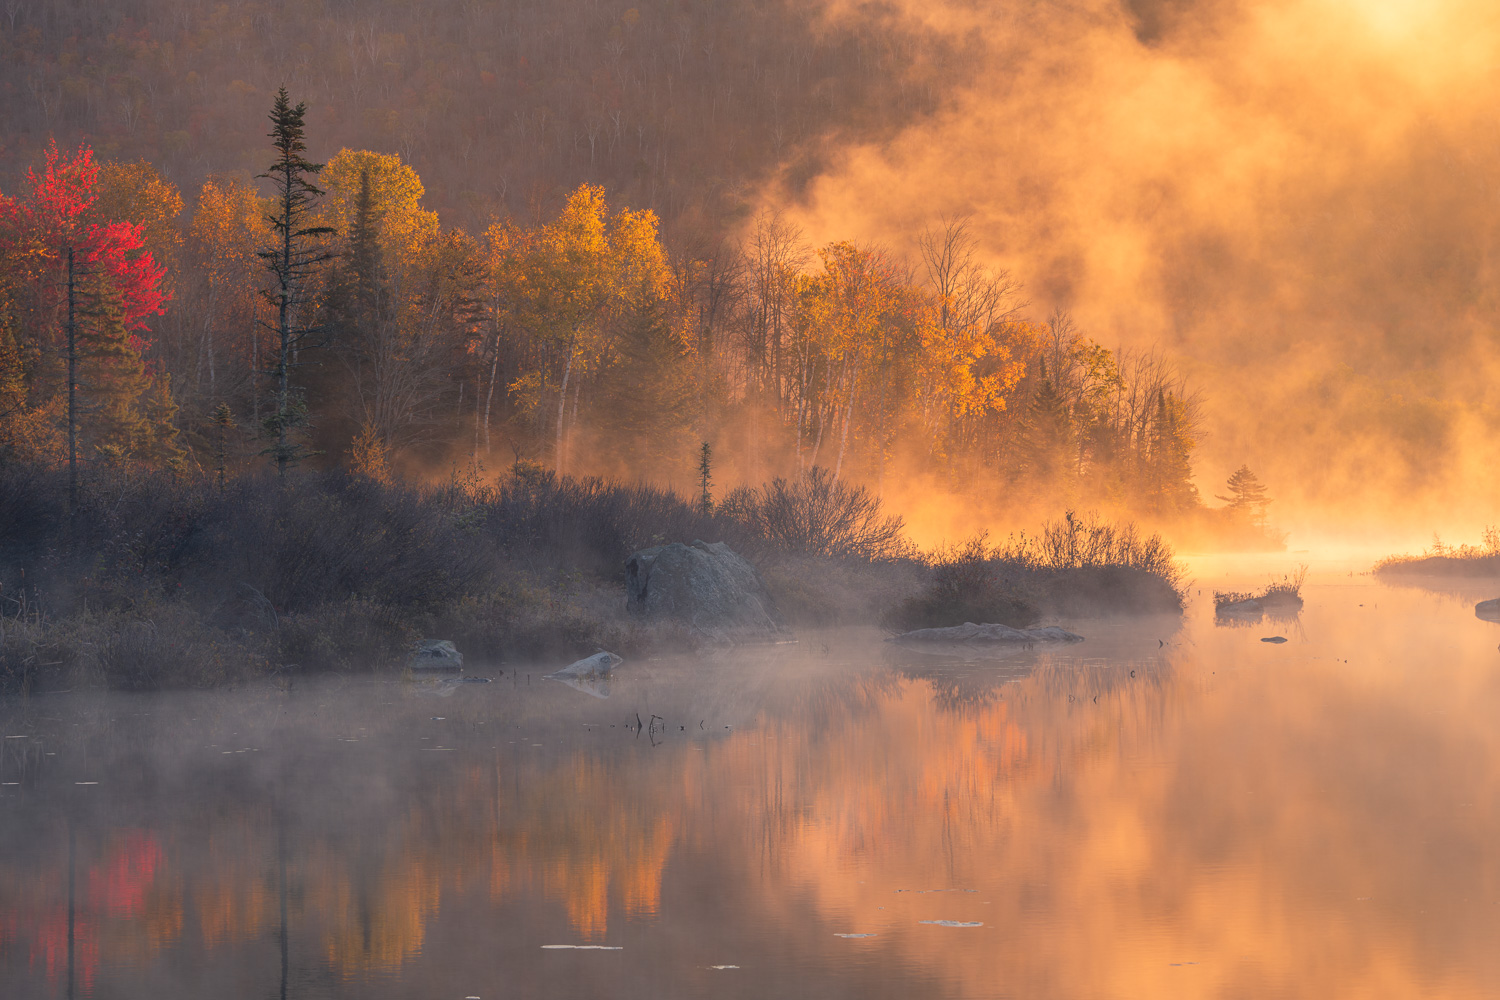 First light paints the rising mist of this scenic pond in the Northeast of Vermont.